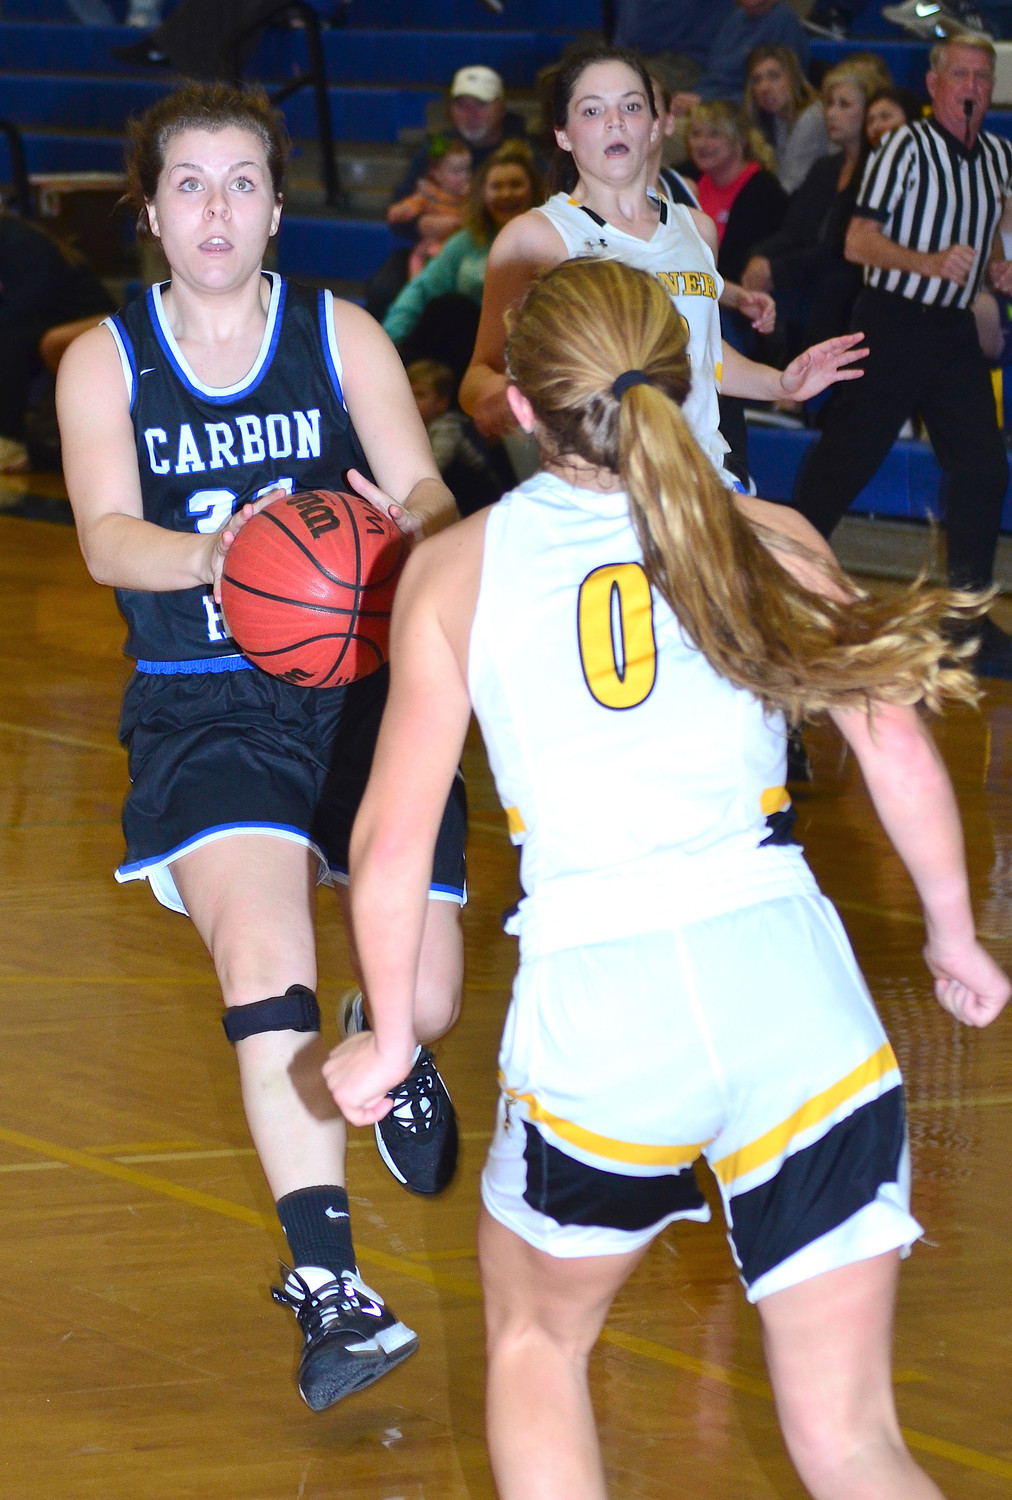 Carbon Hill's Zana Aderholt (34) looks to shoot against Corner during the Curry girls Thanksgiving Tournament on Monday. The Bulldogs won 41-40.